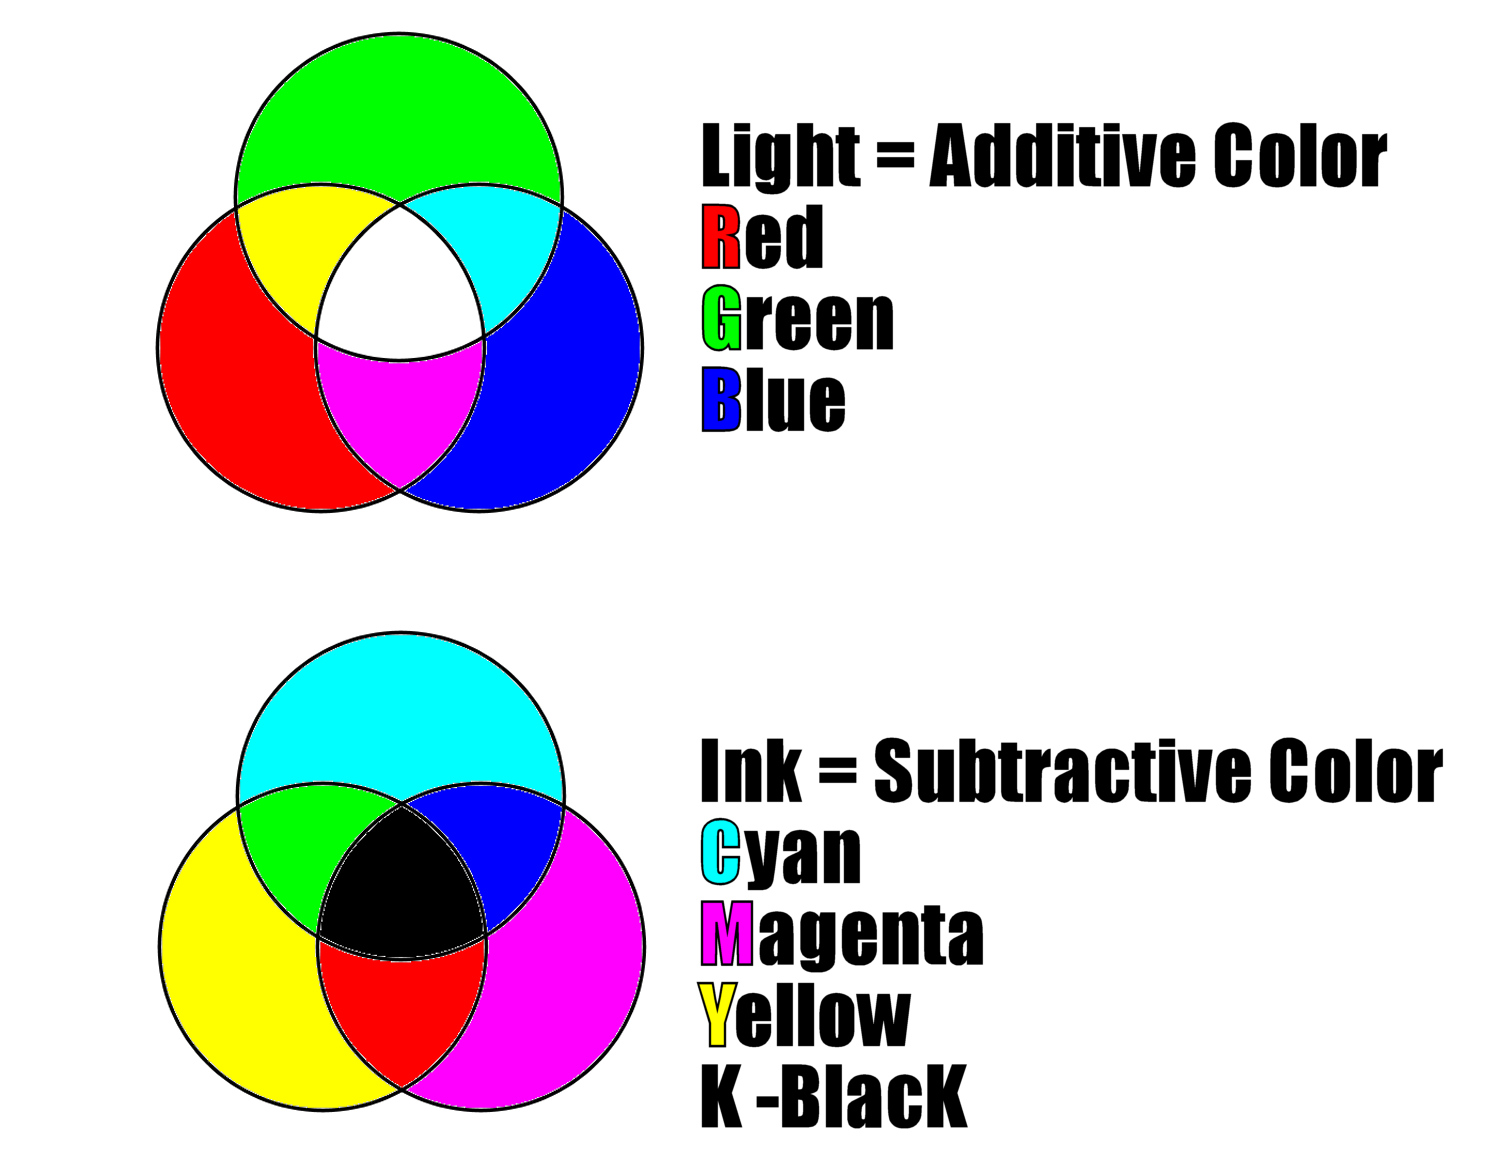 Image: With light, all colors combined equal white. With ink, all colors combined equal black.